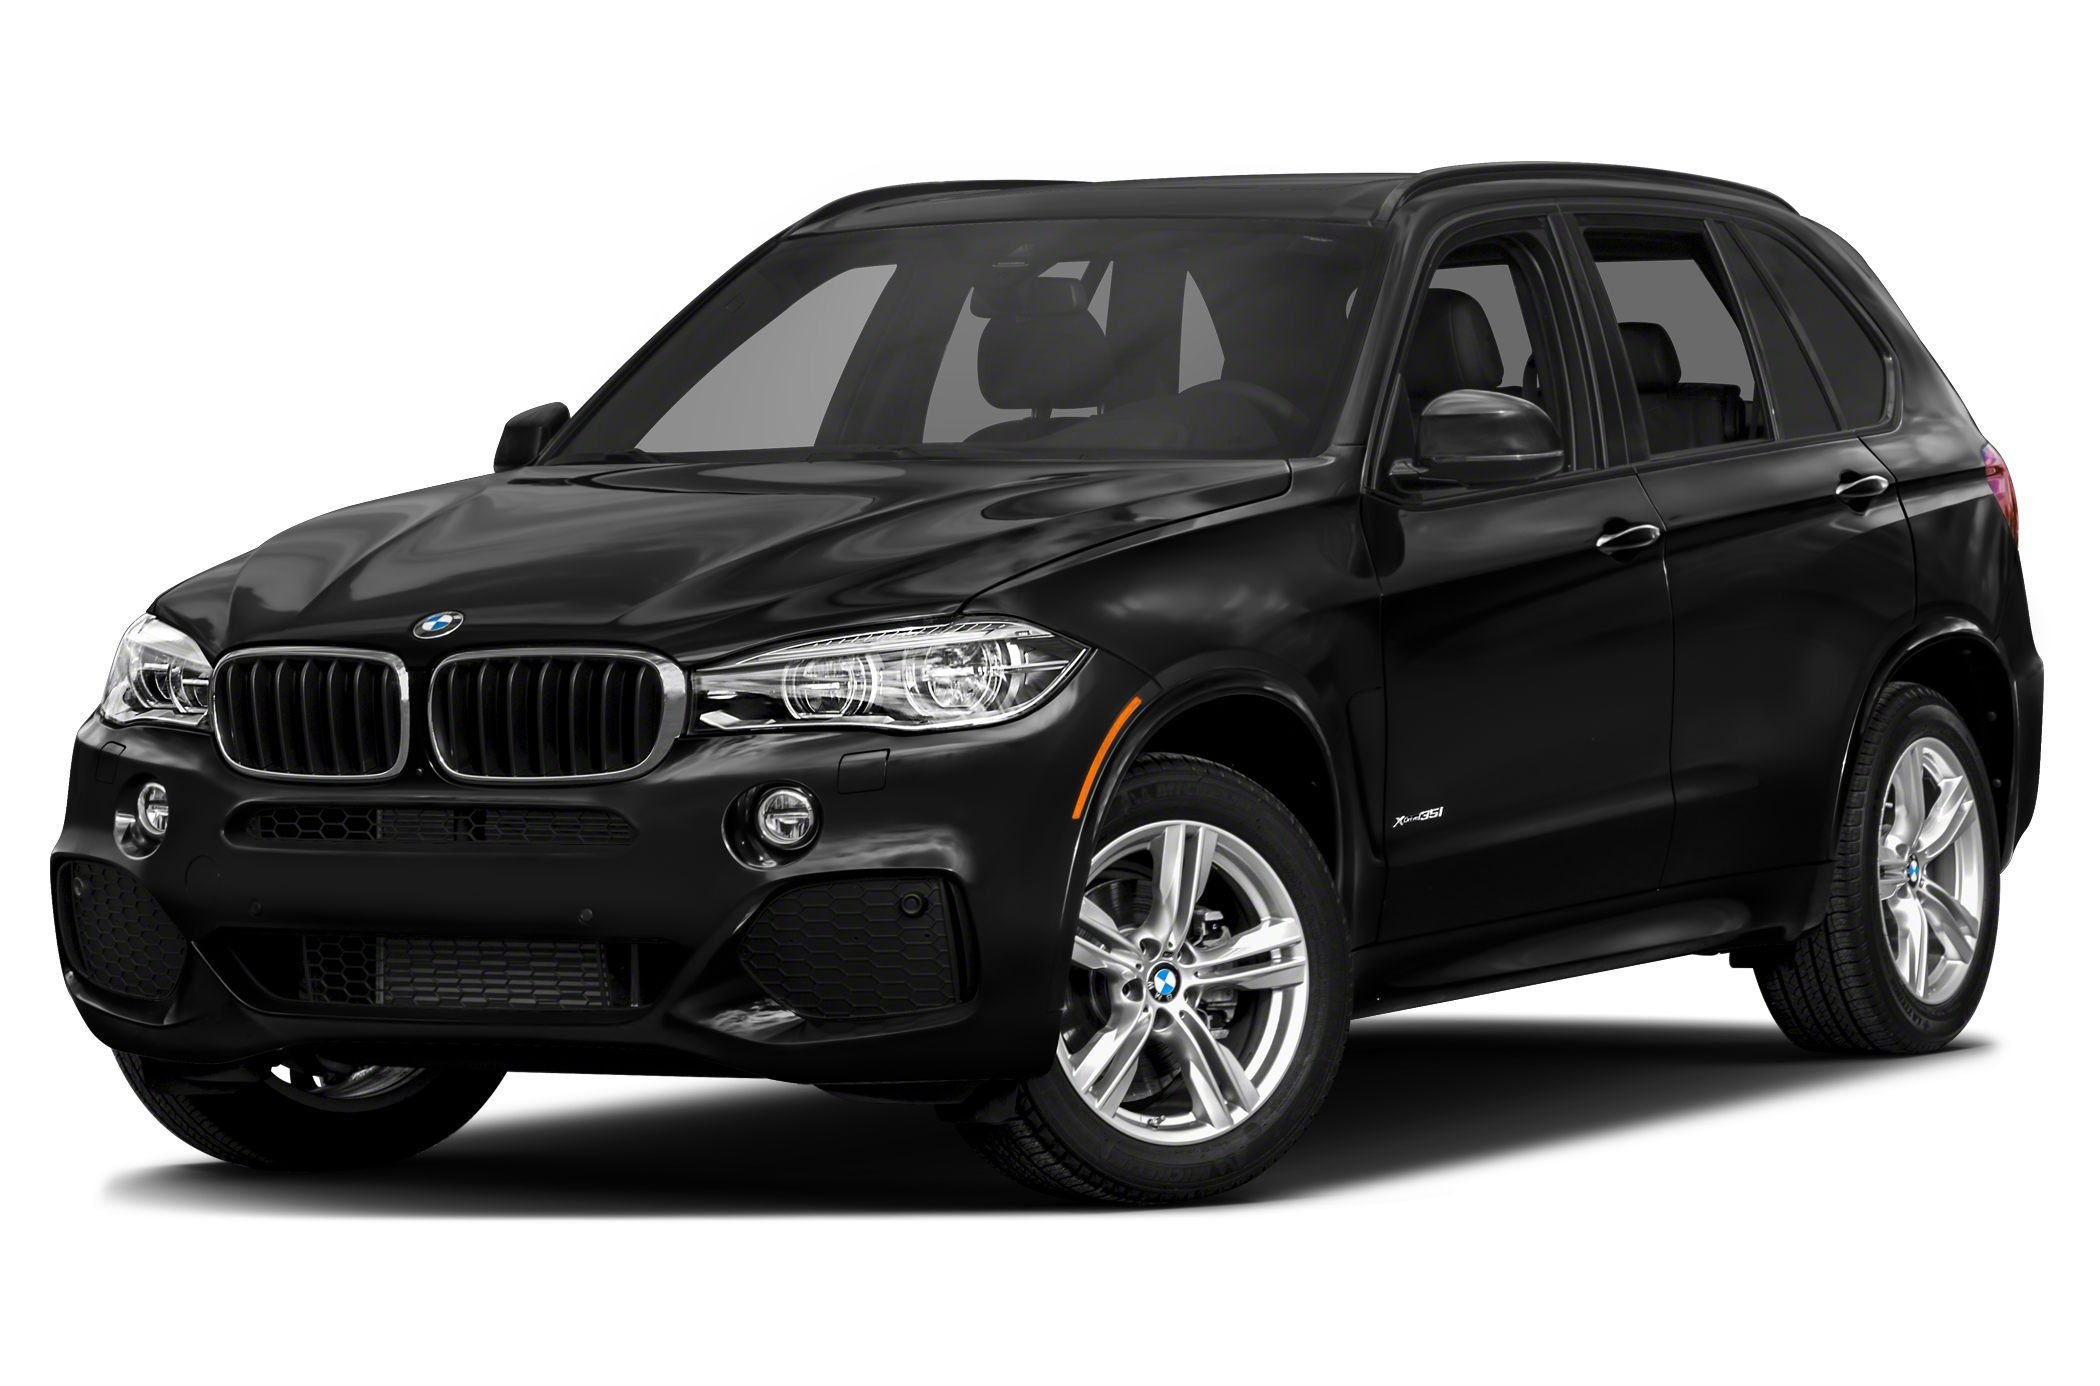 2015 BMW X5 XDrive35i SUV for sale in Nashua for $0 with 3 miles